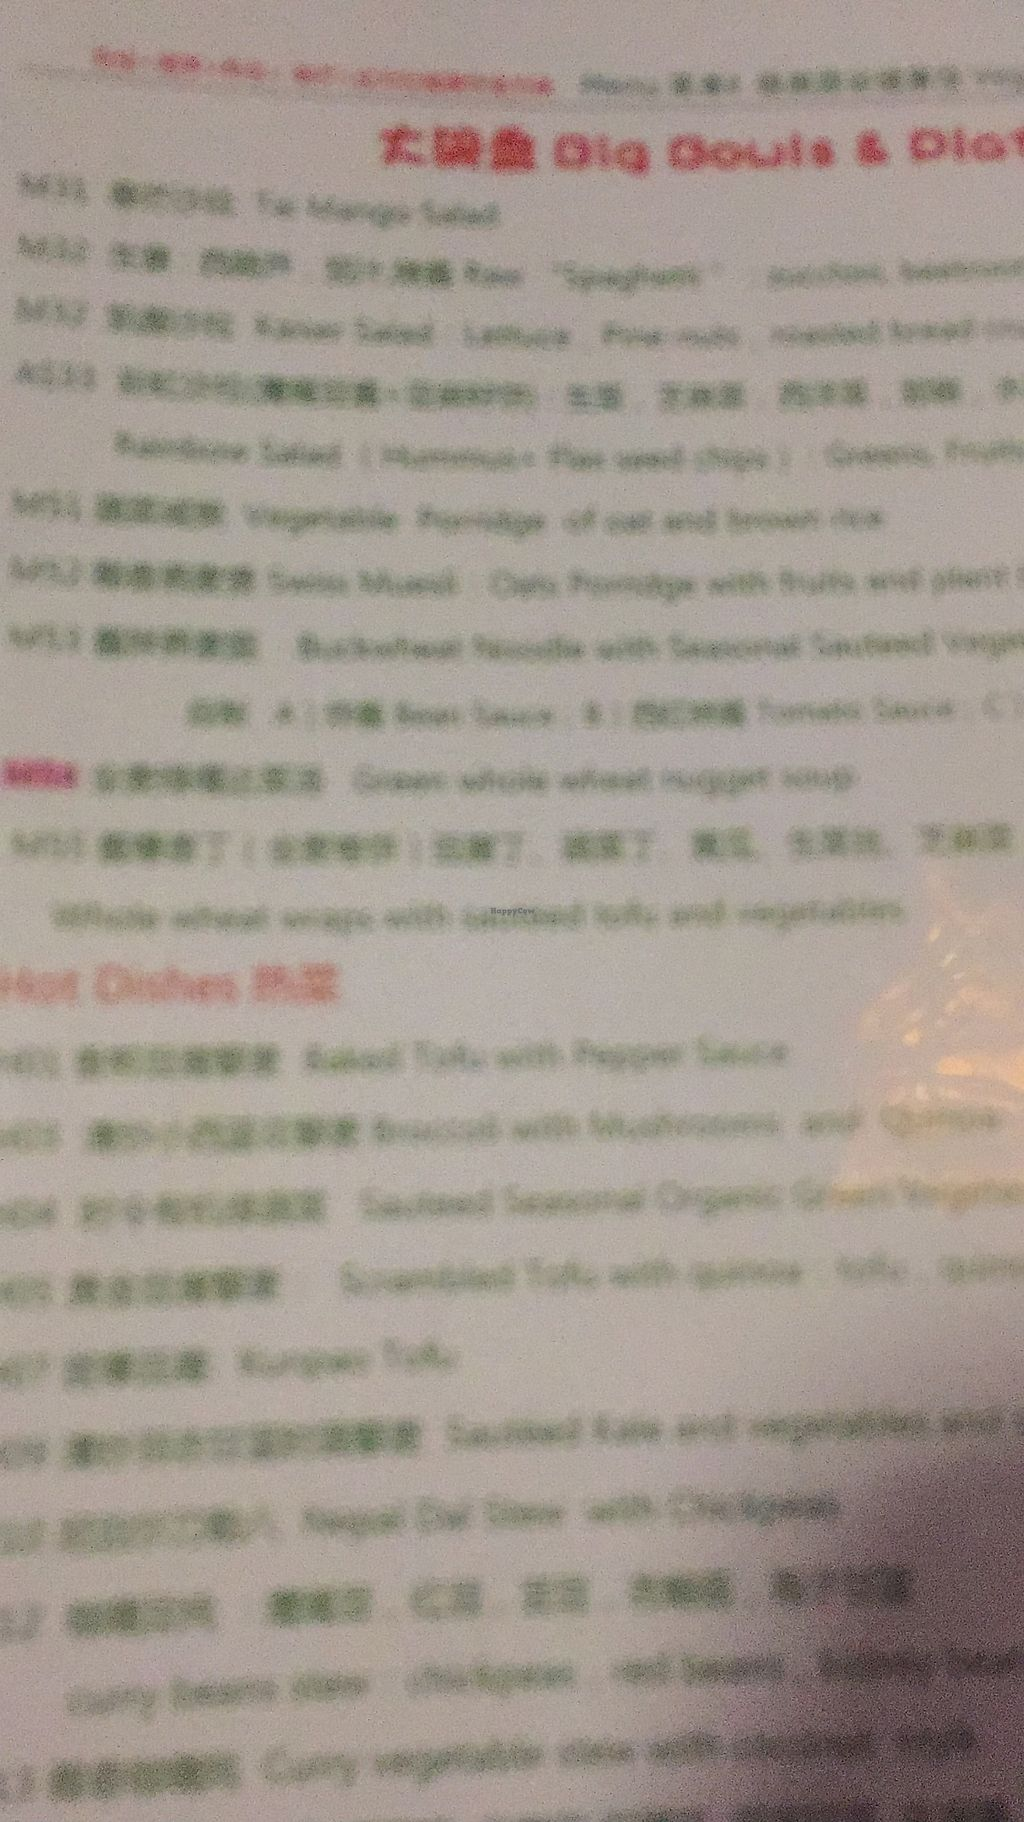 """Photo of Beijing Vegan Hut  by <a href=""""/members/profile/vegannomad2"""">vegannomad2</a> <br/>menu <br/> June 29, 2017  - <a href='/contact/abuse/image/14458/274804'>Report</a>"""